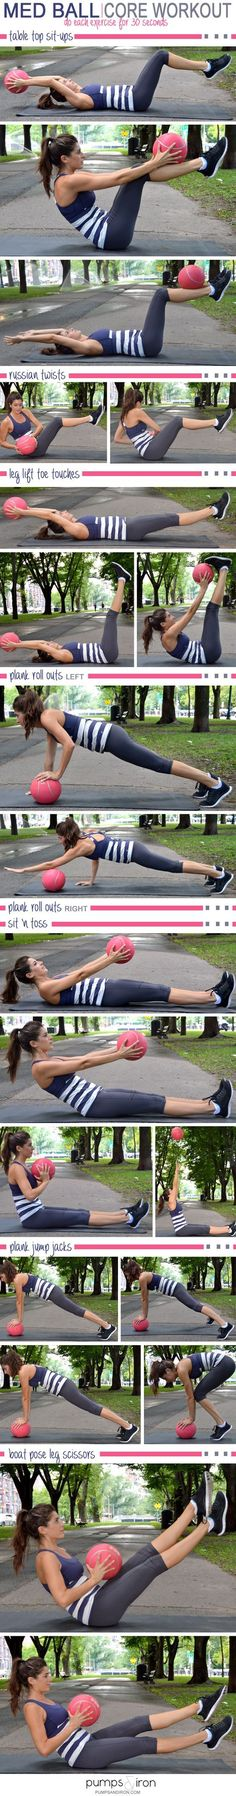 Med Ball Core Workout